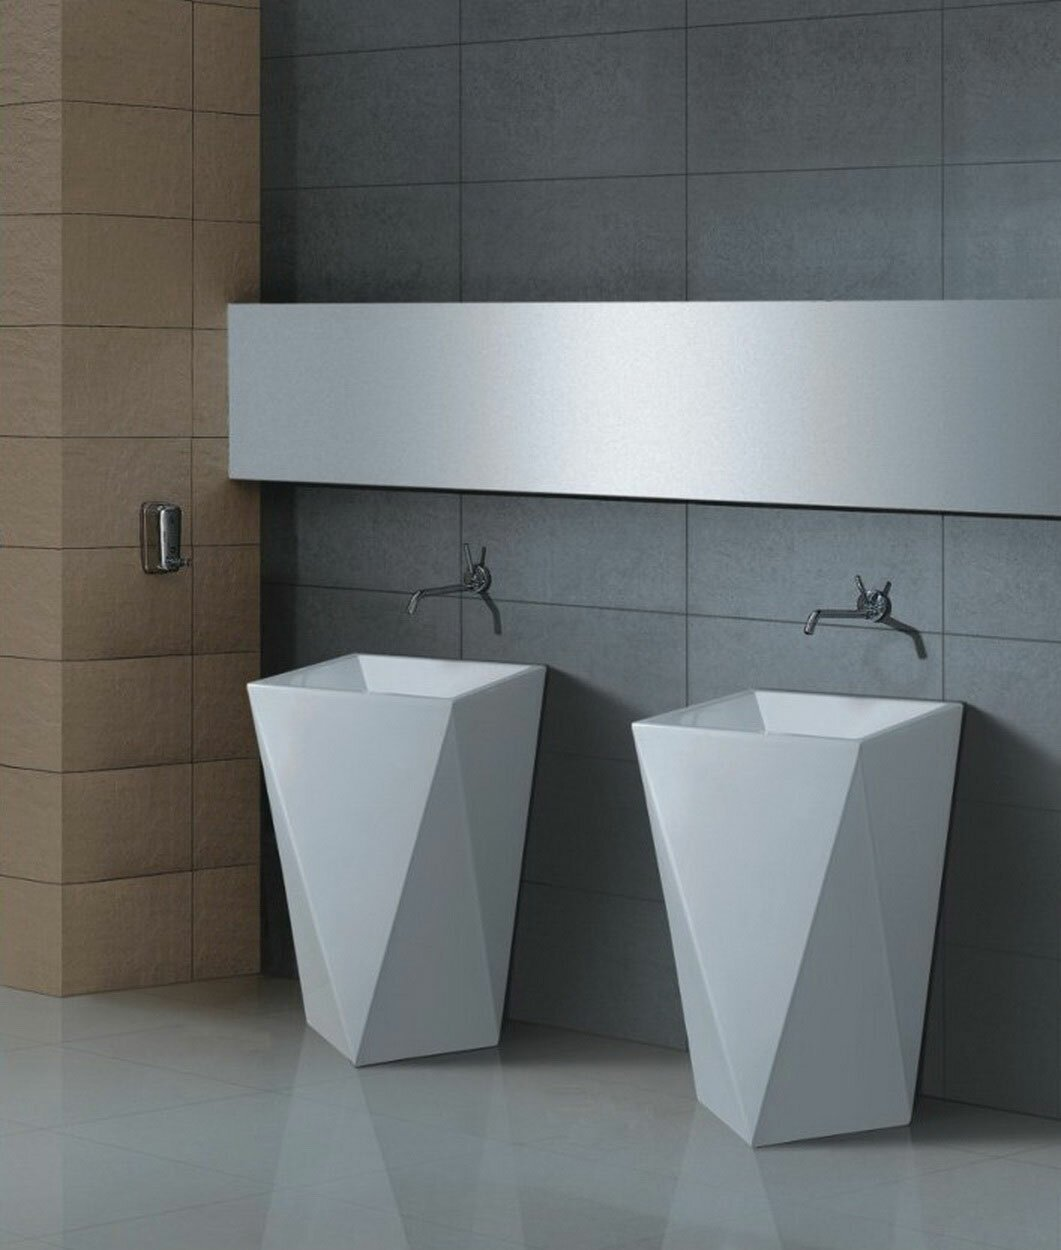 Top 15 Bathroom Sink Designs And Models MostBeautifulThings